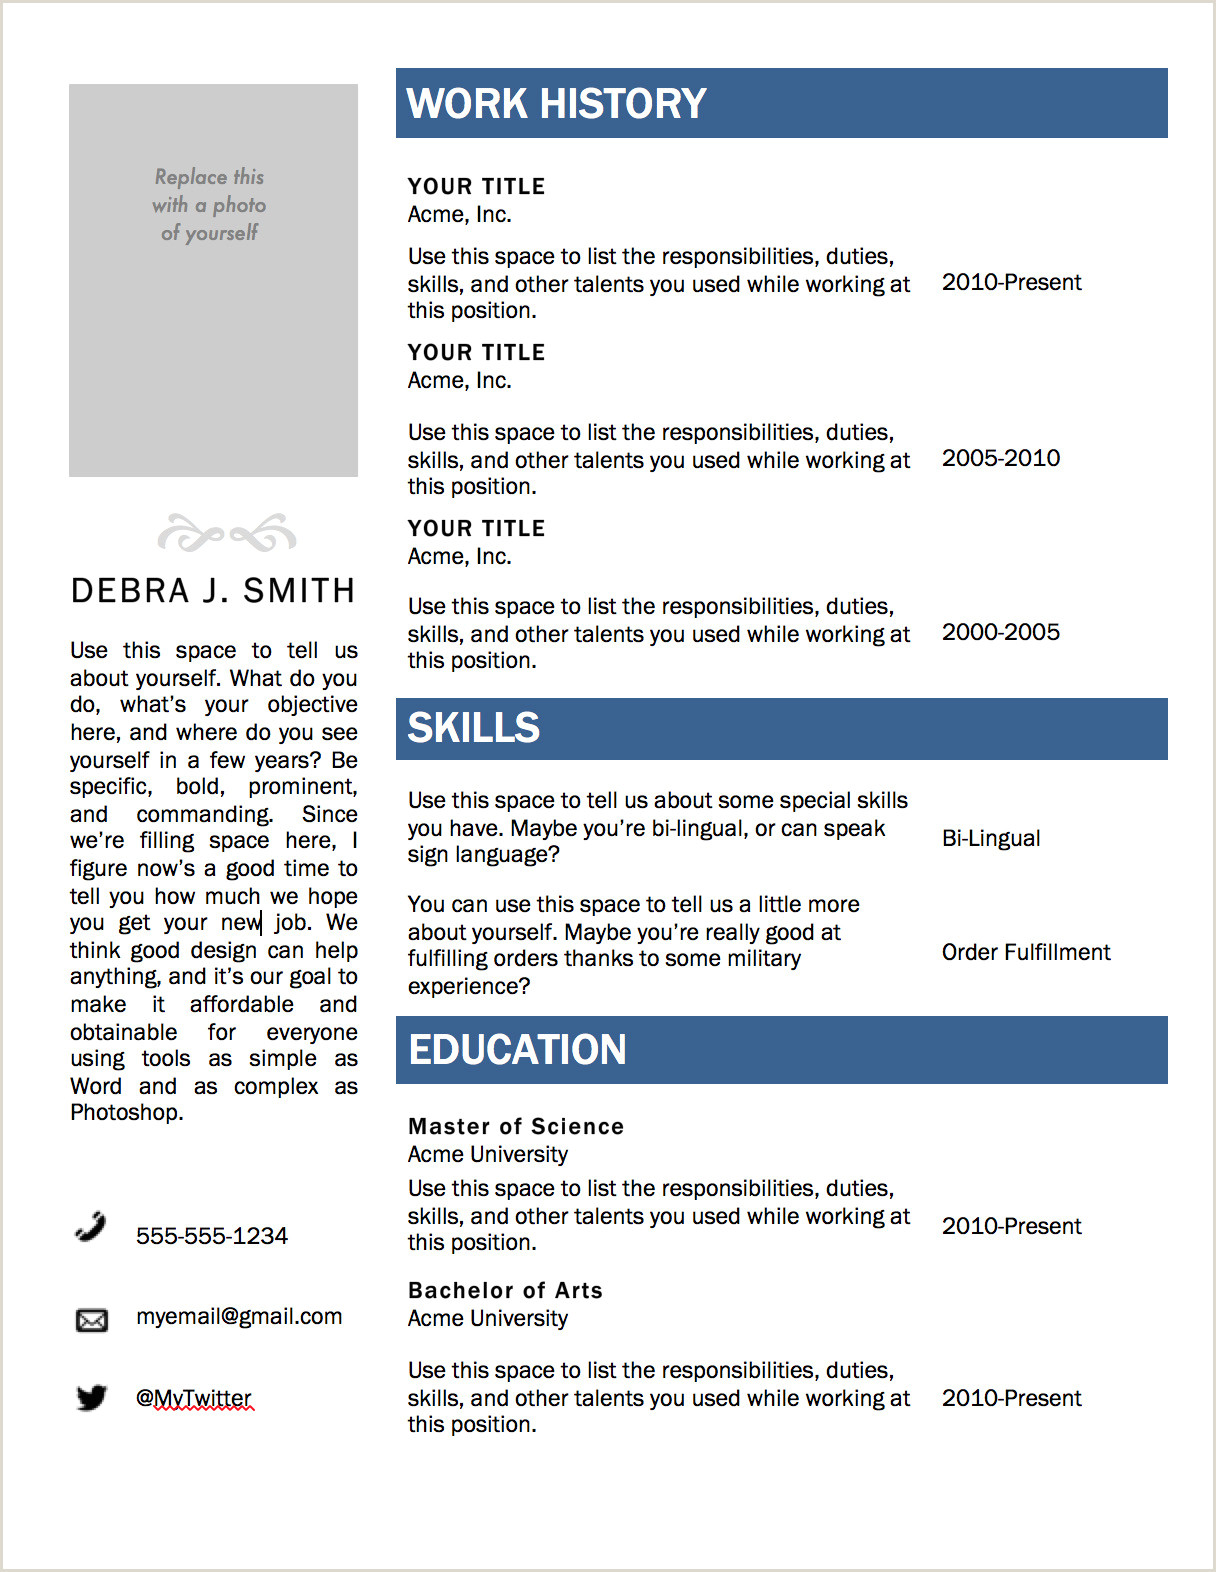 Standard Cv format 2019 Free Download Template Ideas Free Microsoft Resume Templates Marvelous